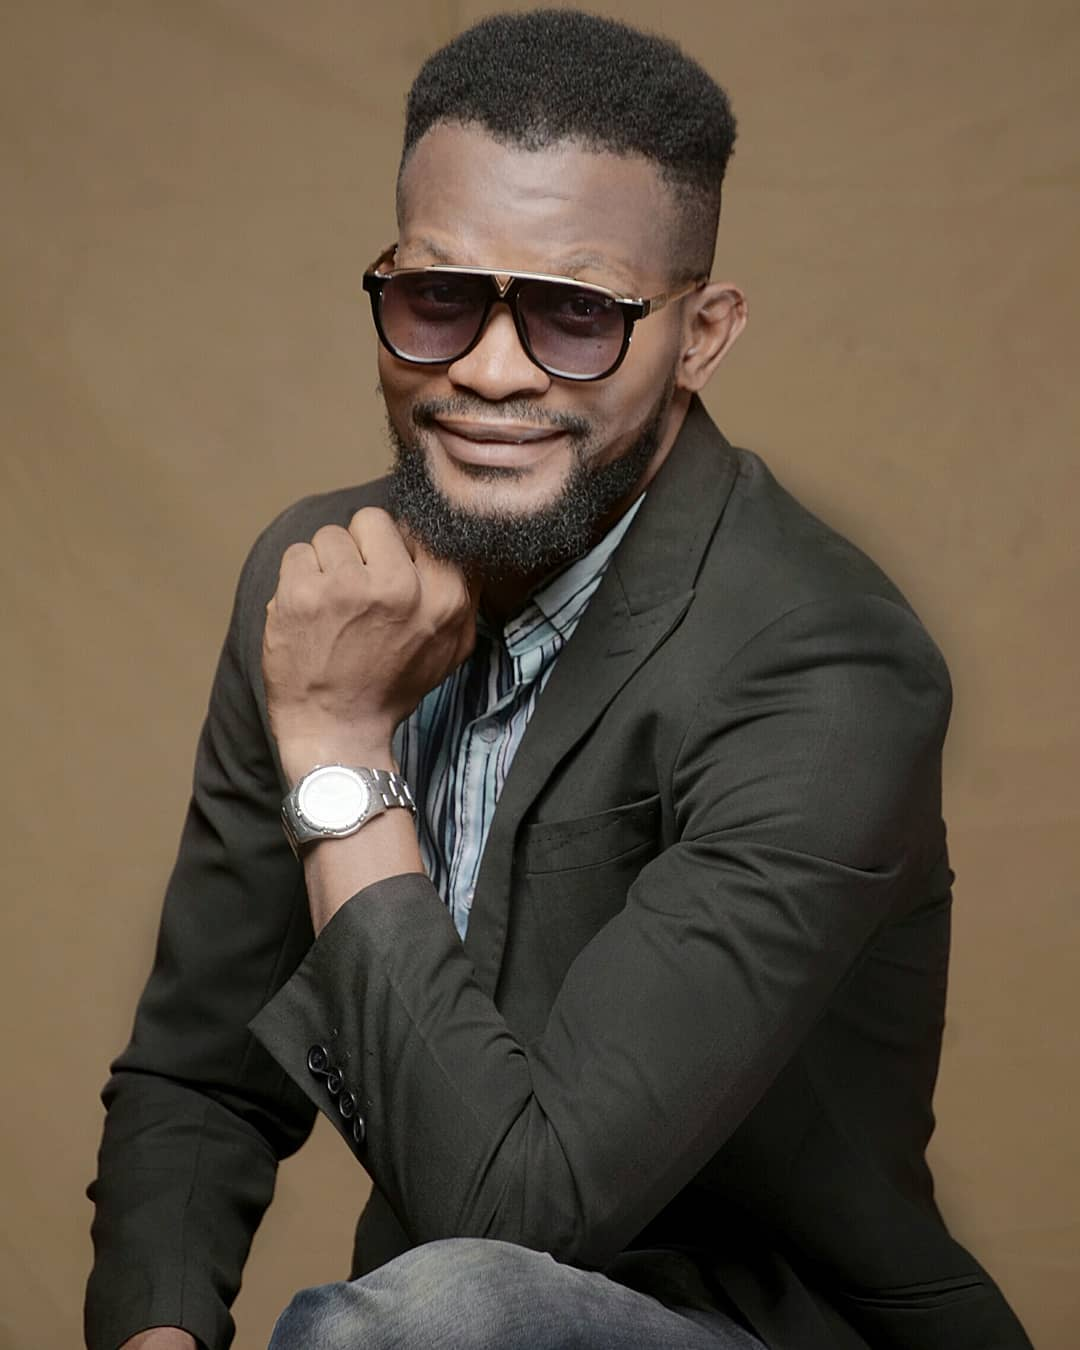 9218822 2f5adea316ef75d47e7f1f008ad46b5e jpegb95aaec172bf156e64d0a5251c1c35bf - Actor Uche Maduagwu publicly confess love for Waje